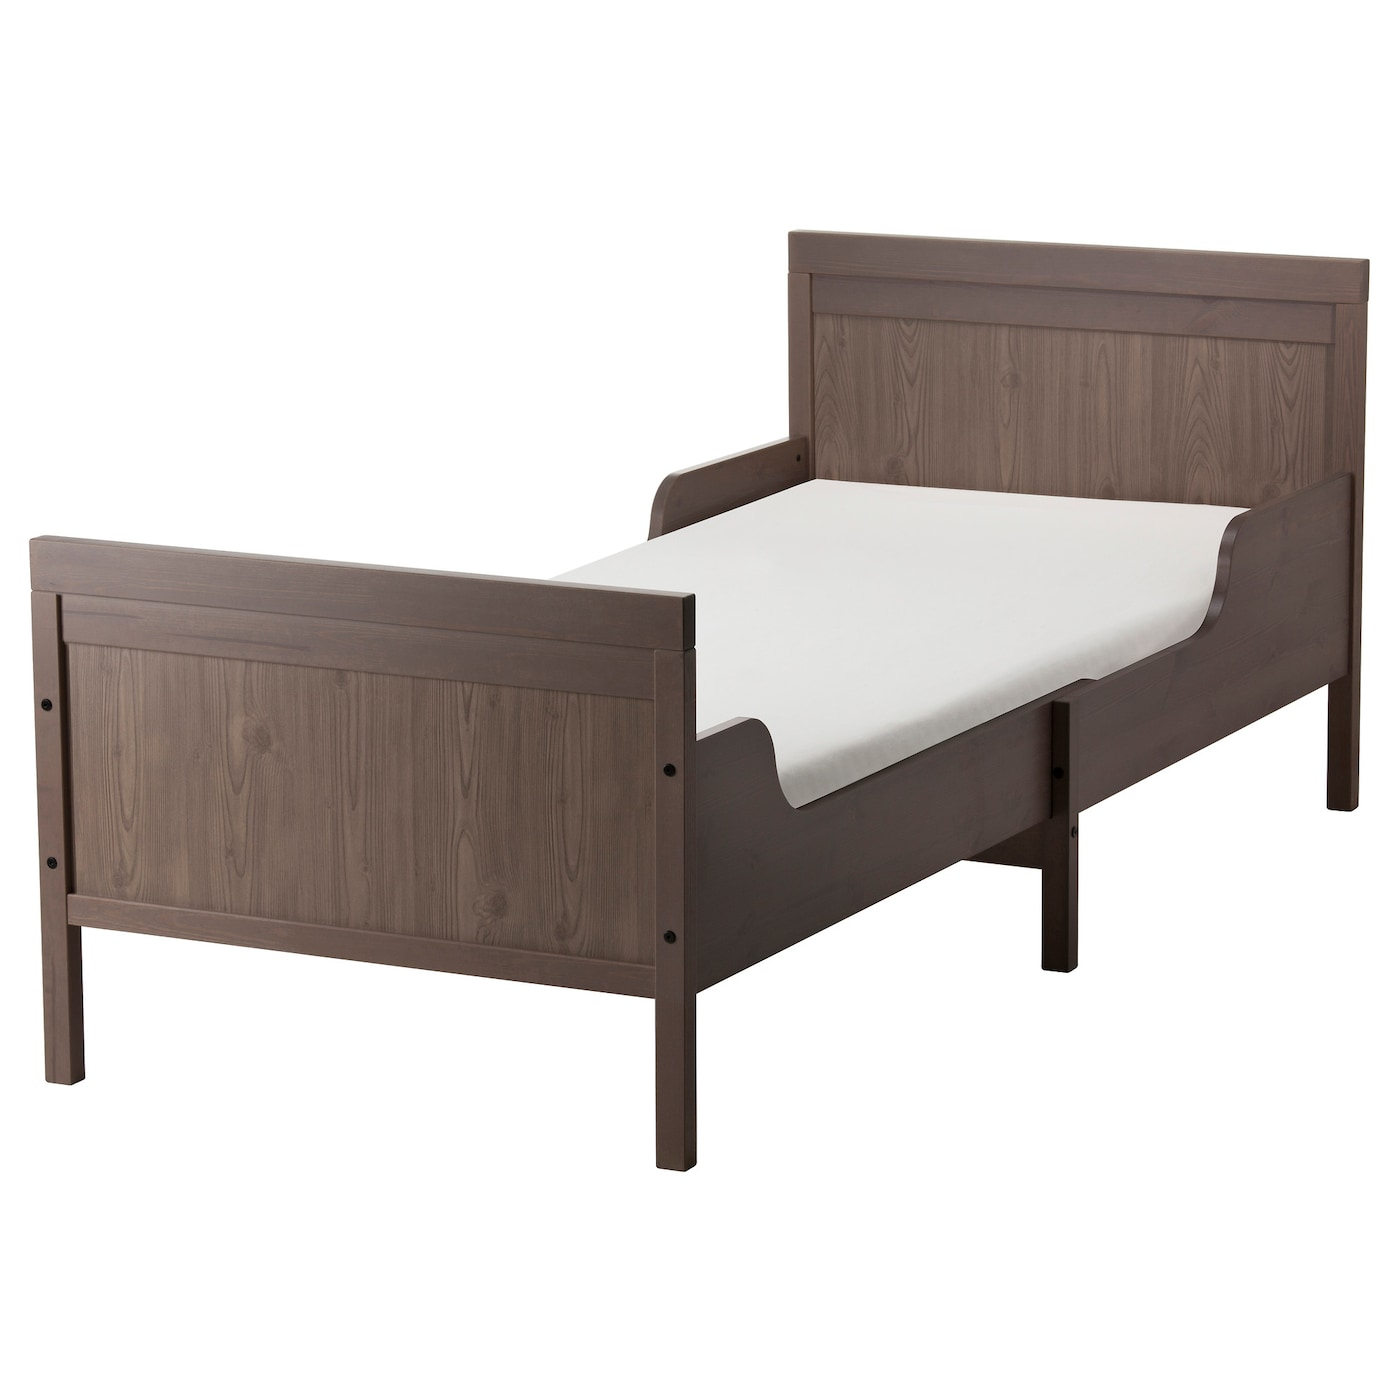 IKEA SUNDVIK Ext Bed Frame With Slatted Base